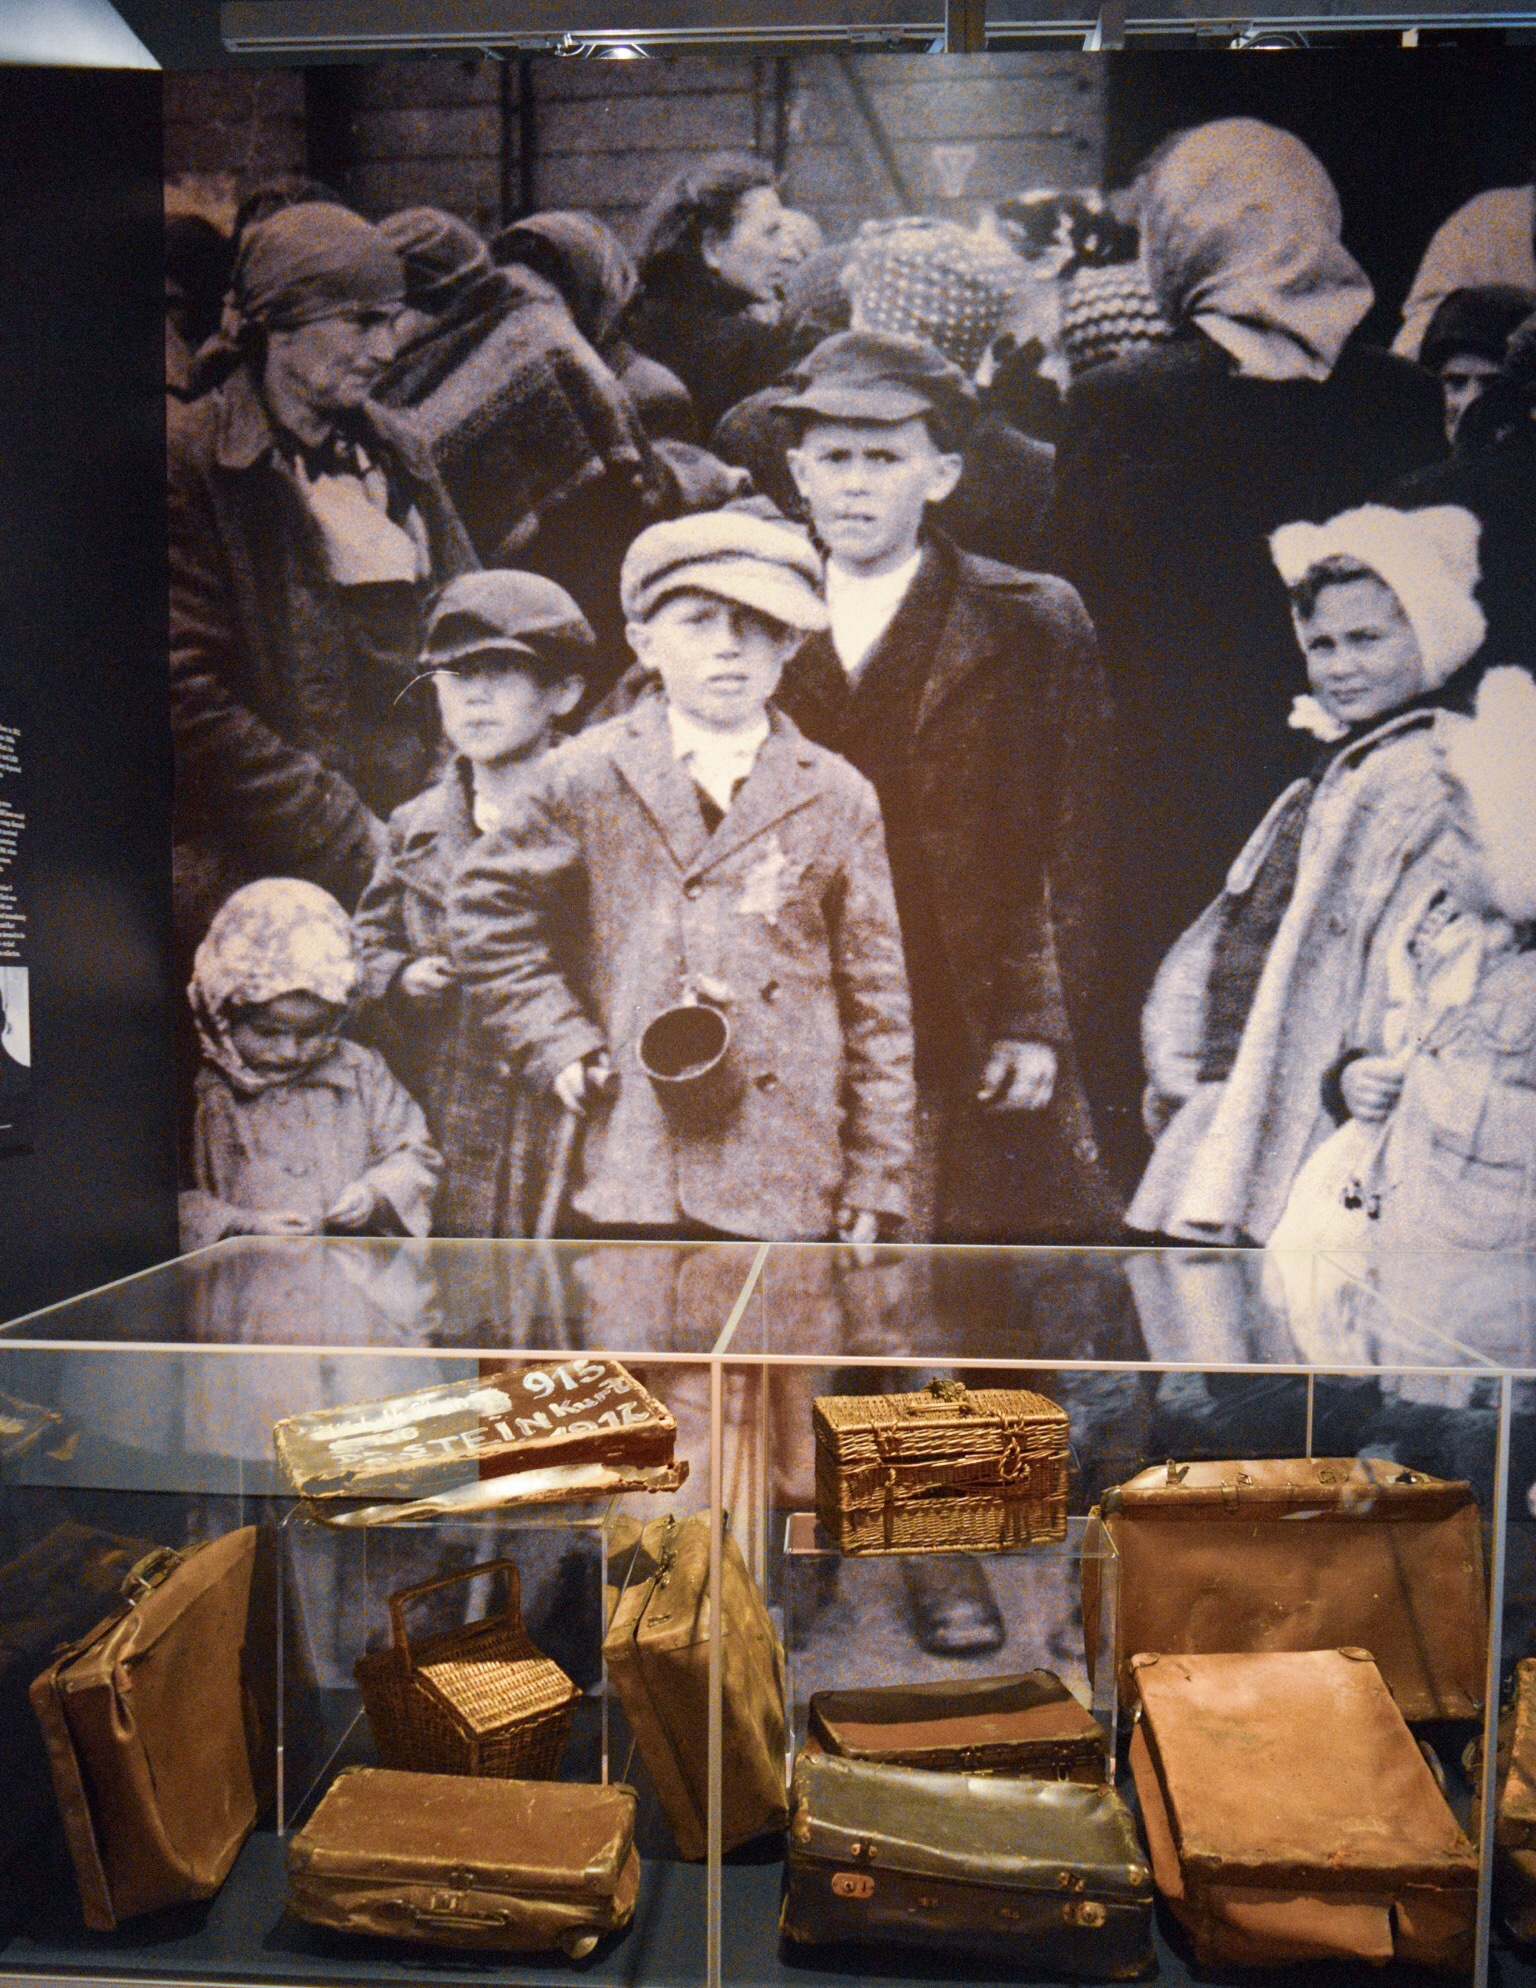 Luggage confiscated from people sent to Auschwitz